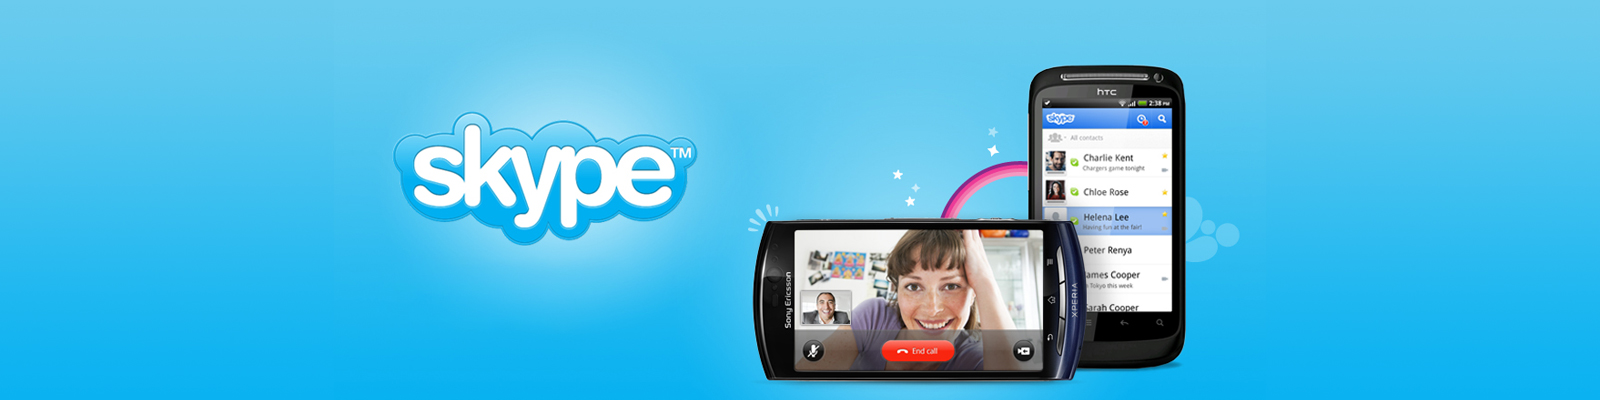 skype app development